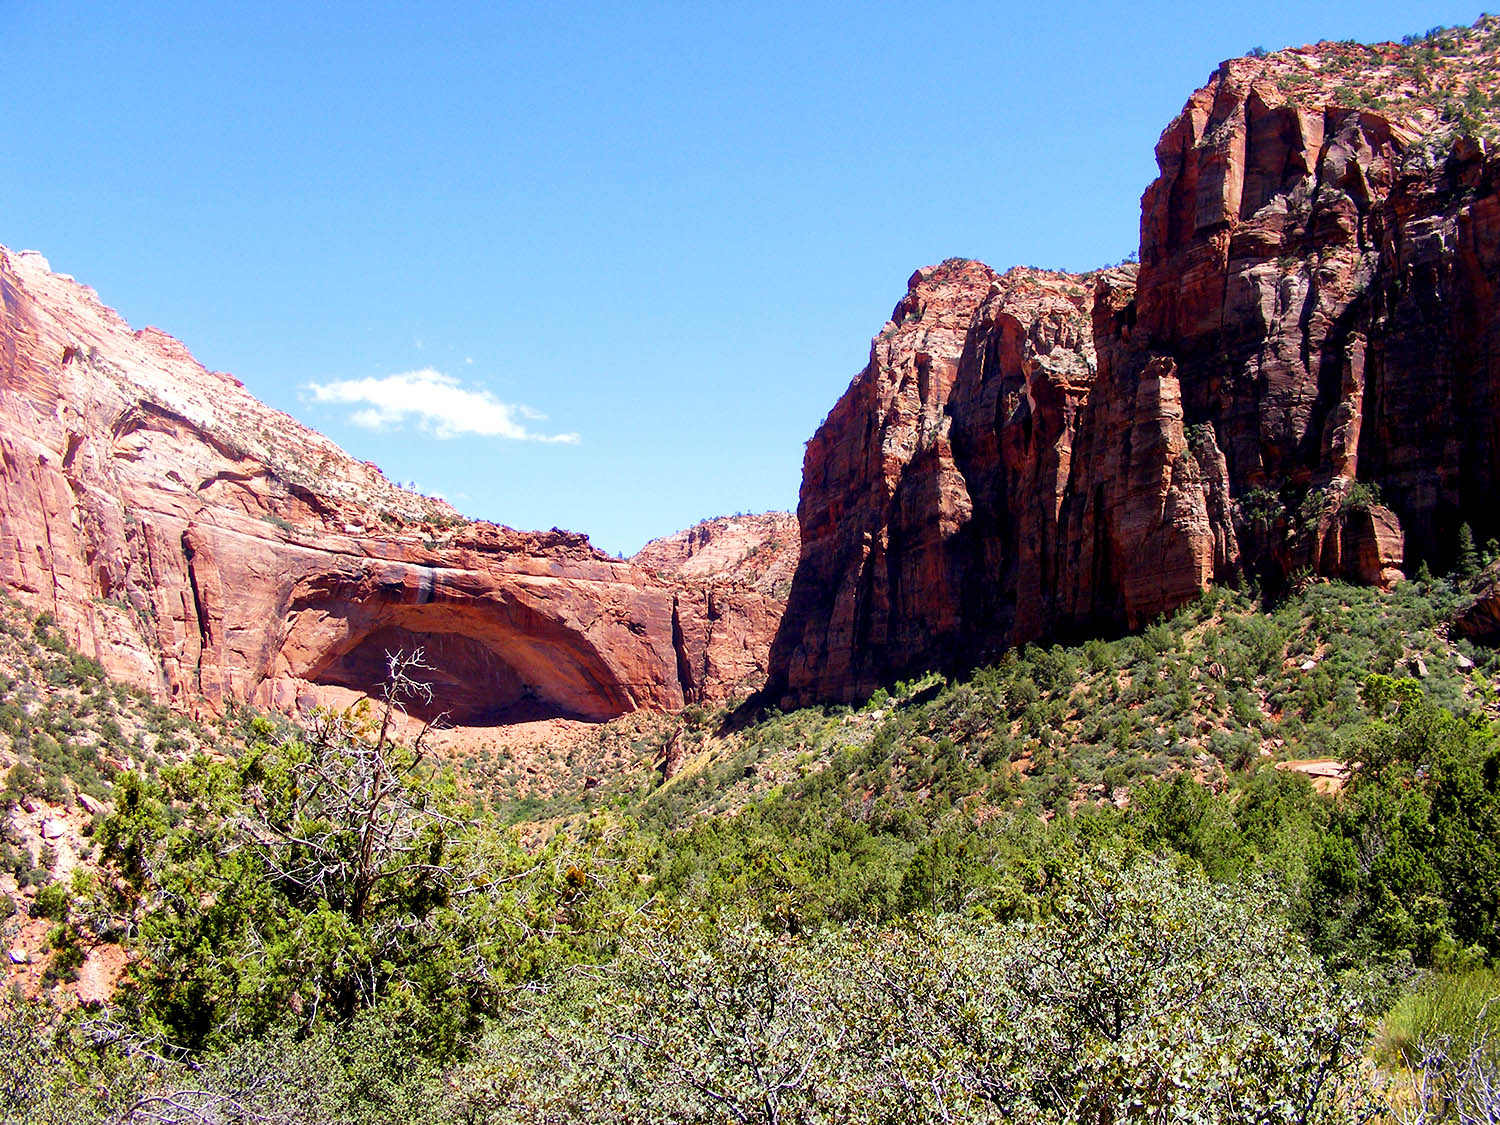 // Zion Canyon National Park